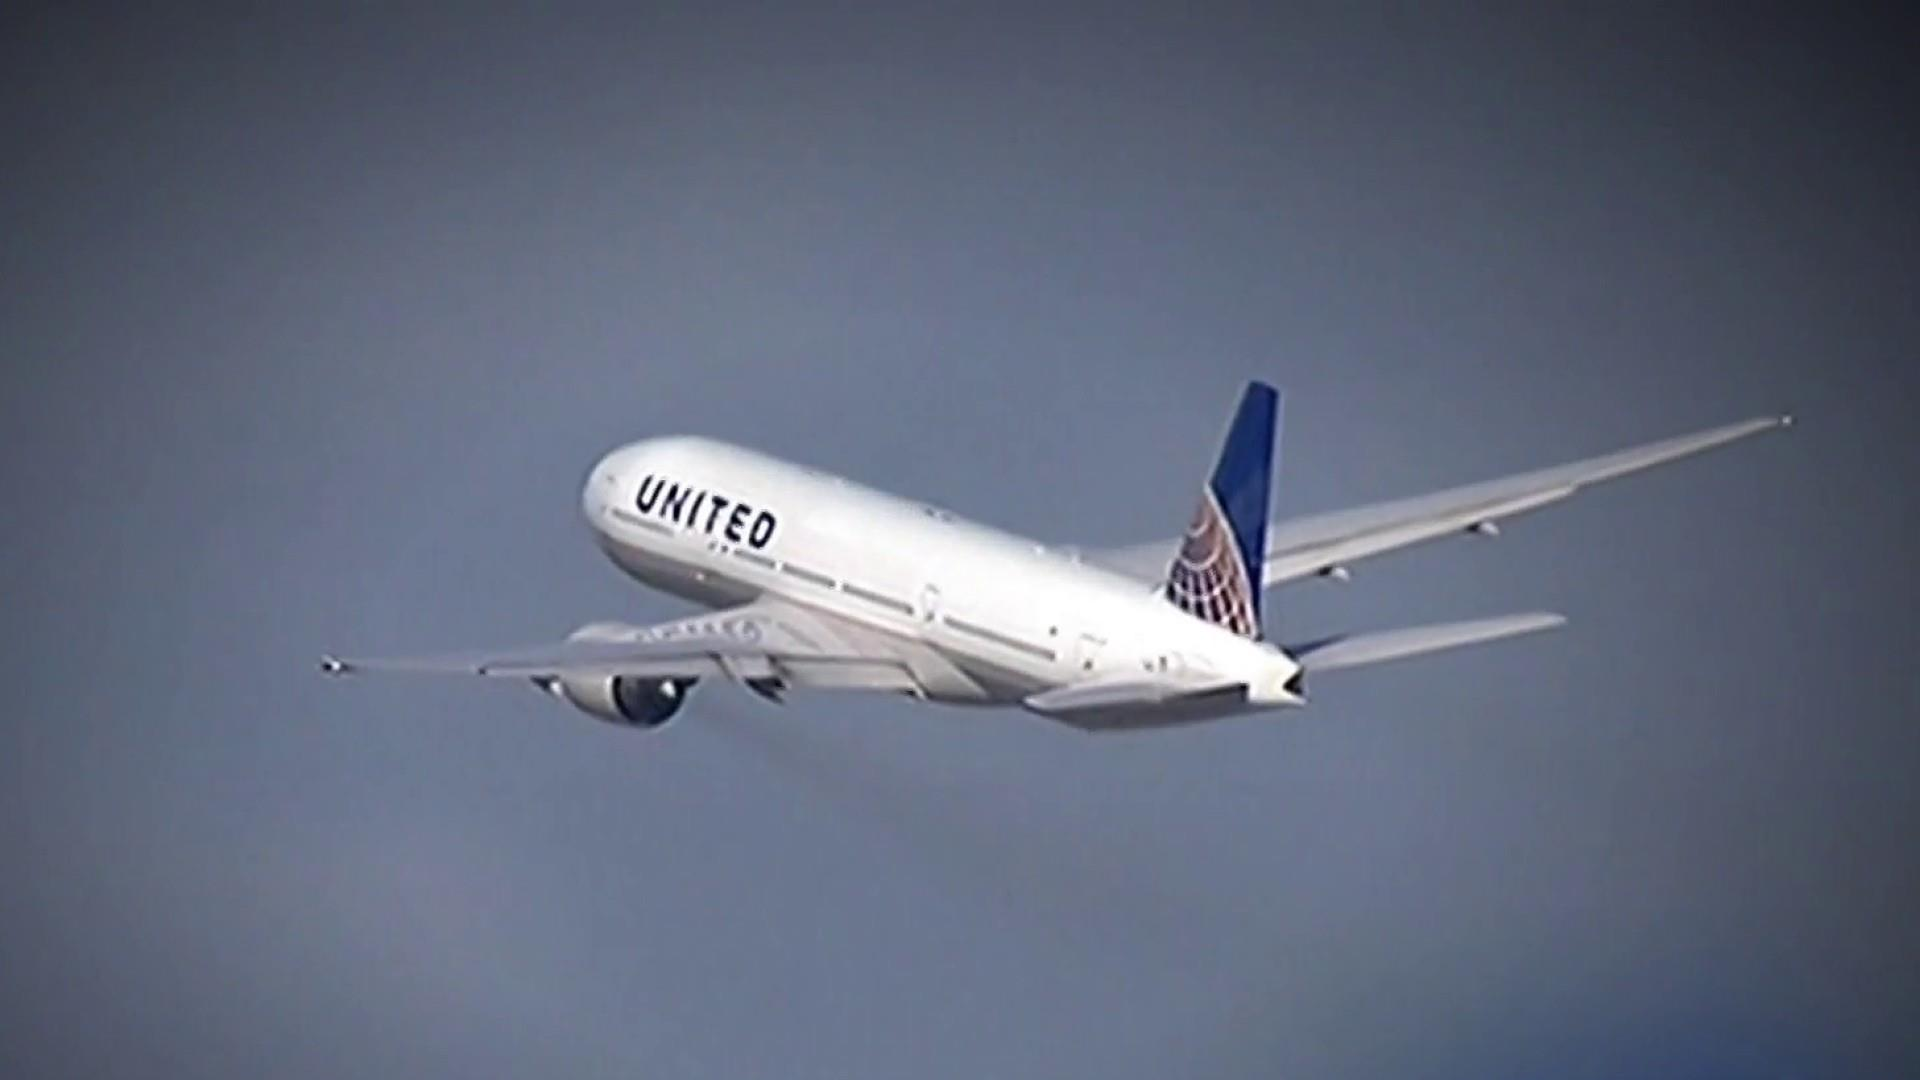 United Rolls Out New Pet Transportation Policy Bans Certain Breeds